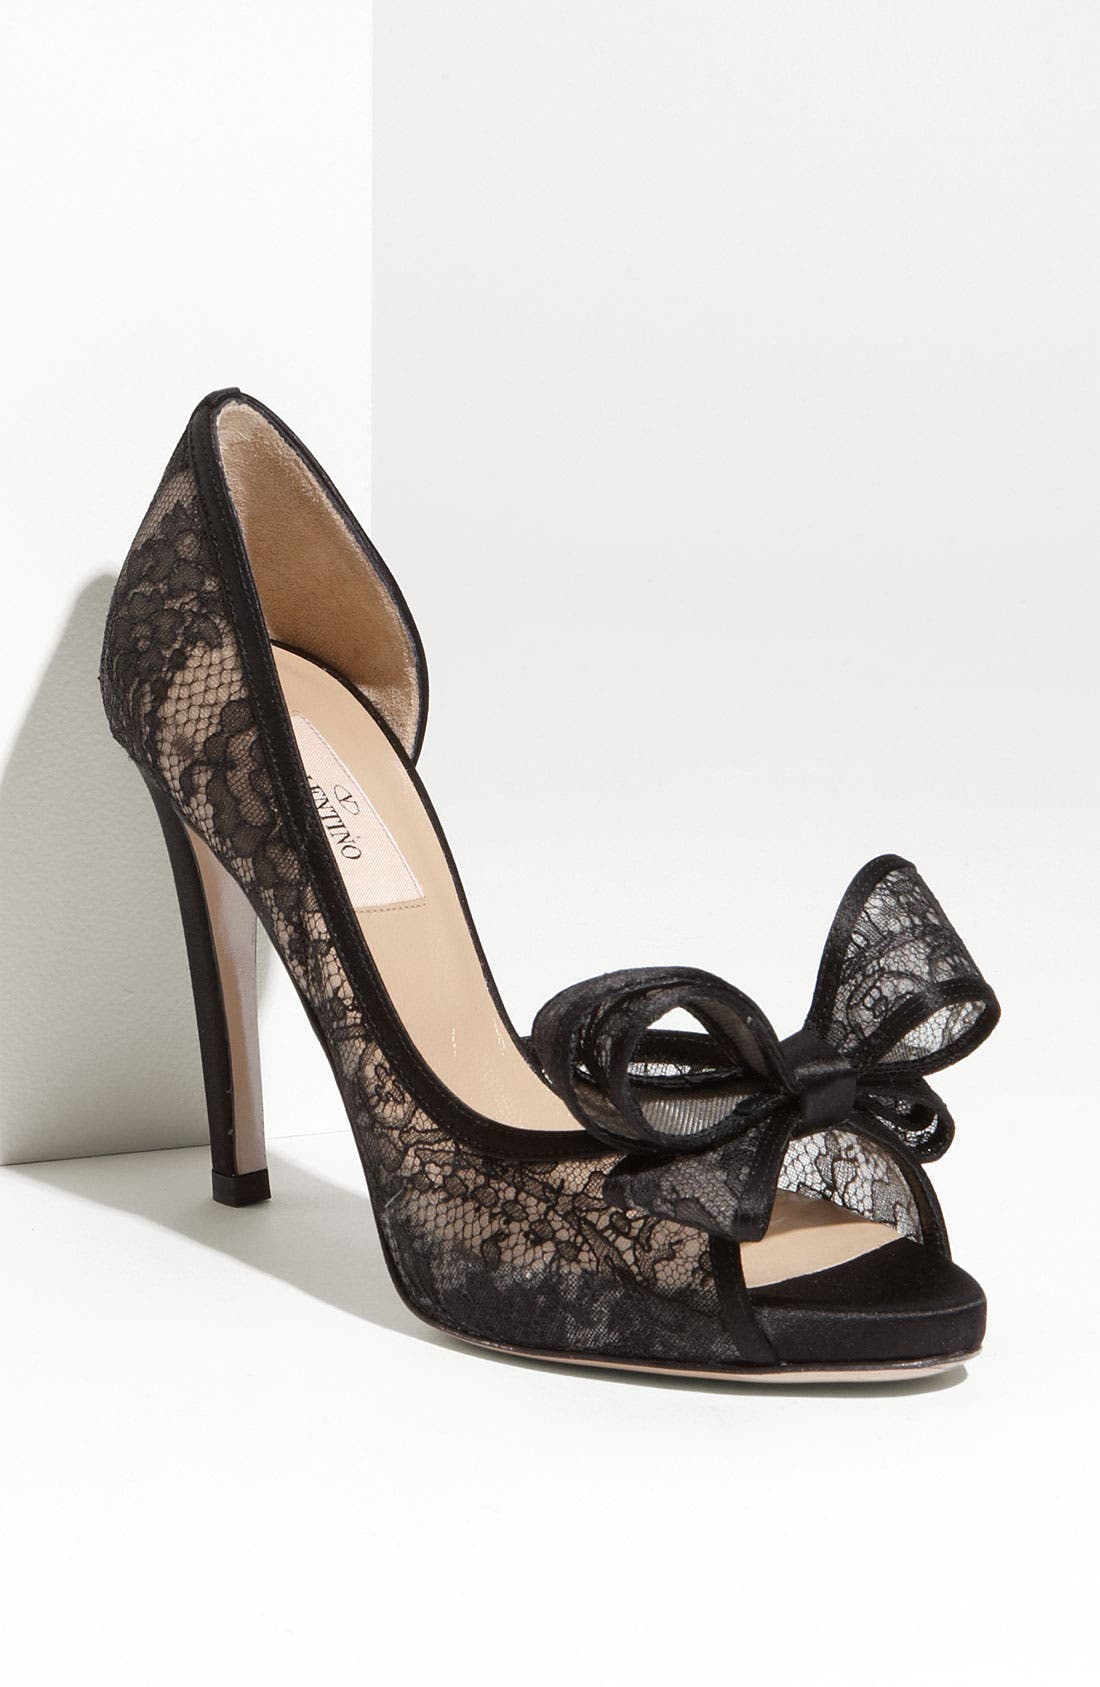 Main Image - Valentino Lace Couture Bow d'Orsay Pump